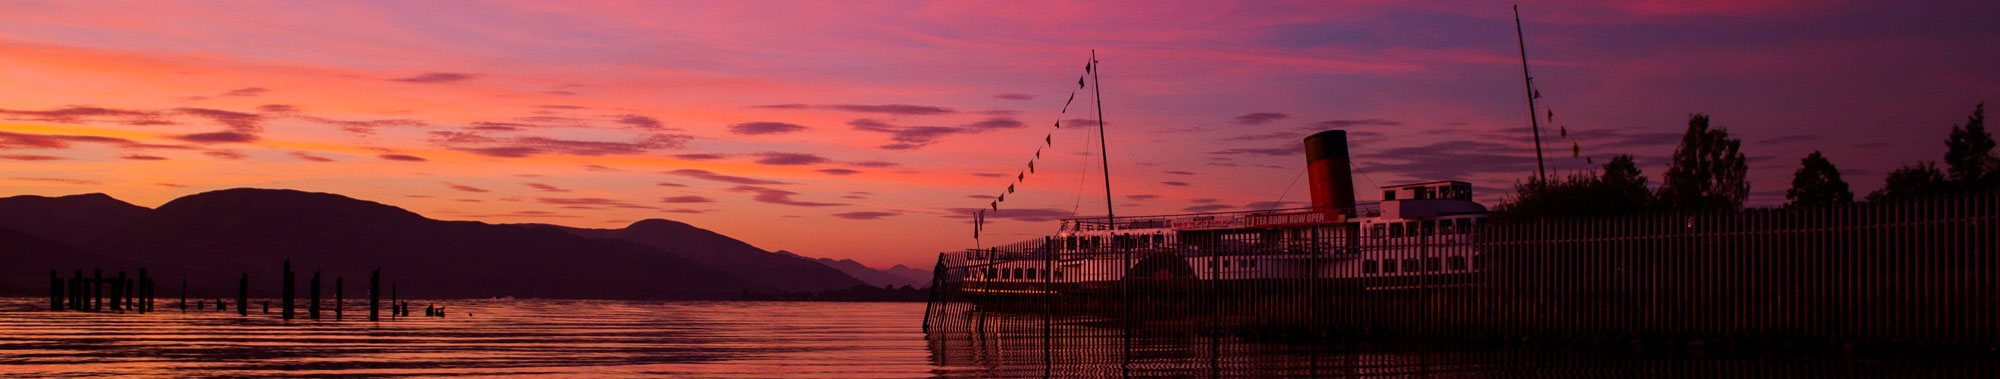 Photo of the Maid of the Loch with a purple sky